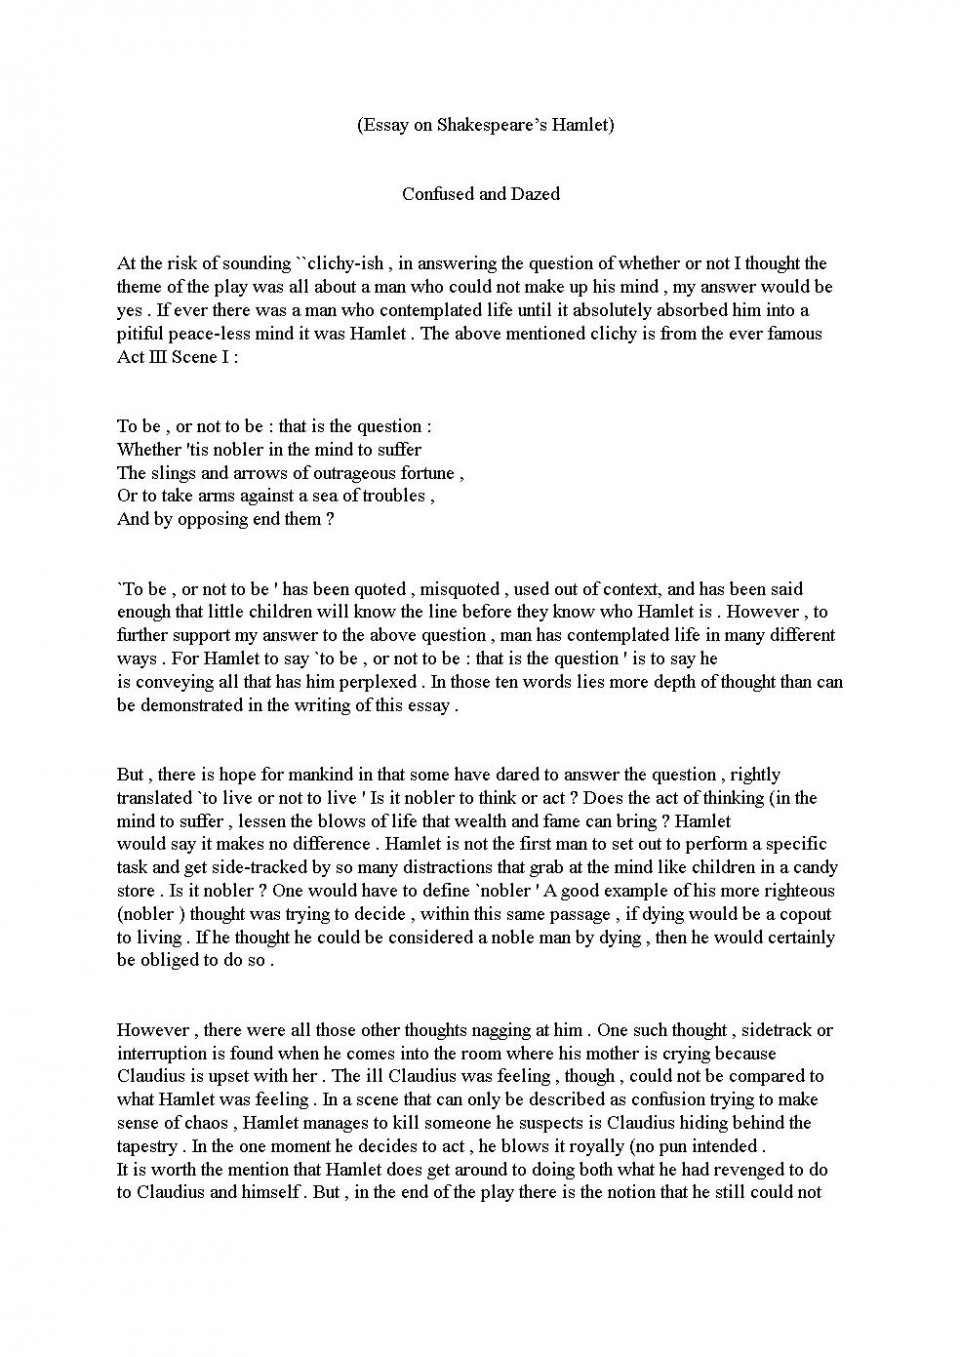 005 Drama Essay Sample Example Rome Was Not Built In Day Magnificent A Short 960